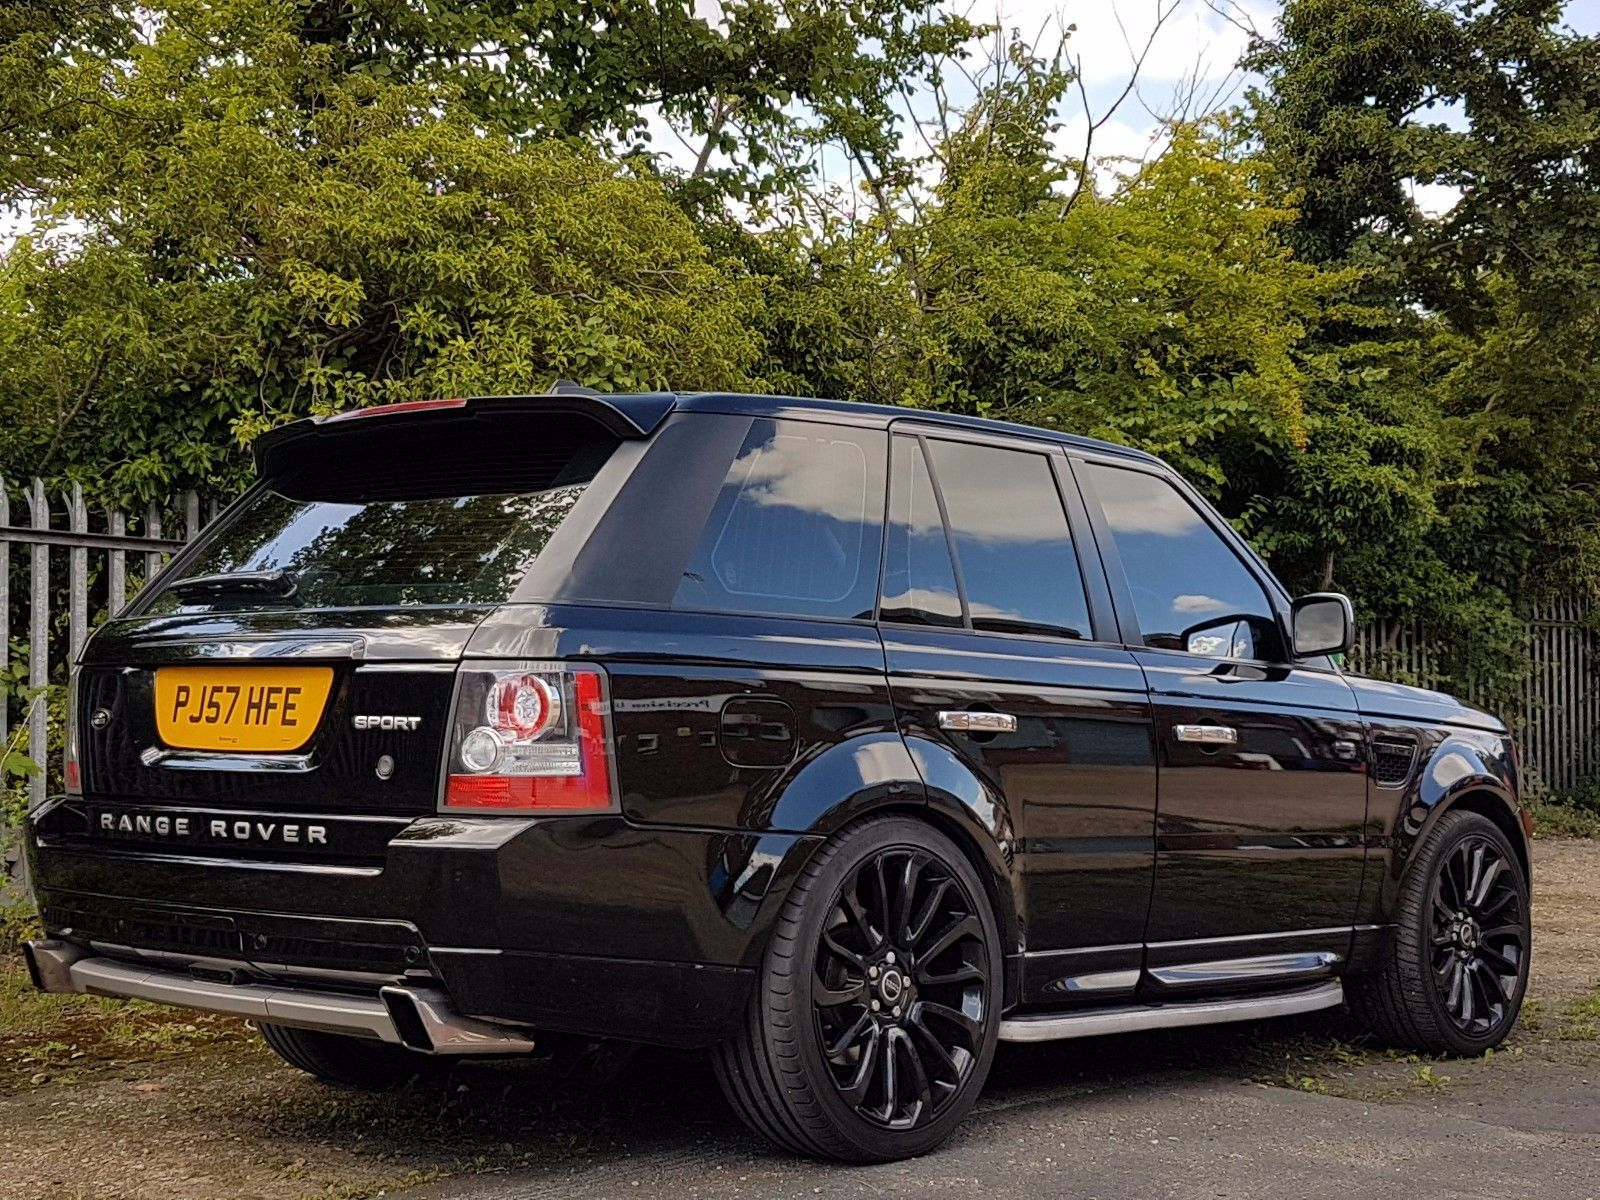 pin by richard priest on range rover range rover range rover sport twin turbo. Black Bedroom Furniture Sets. Home Design Ideas